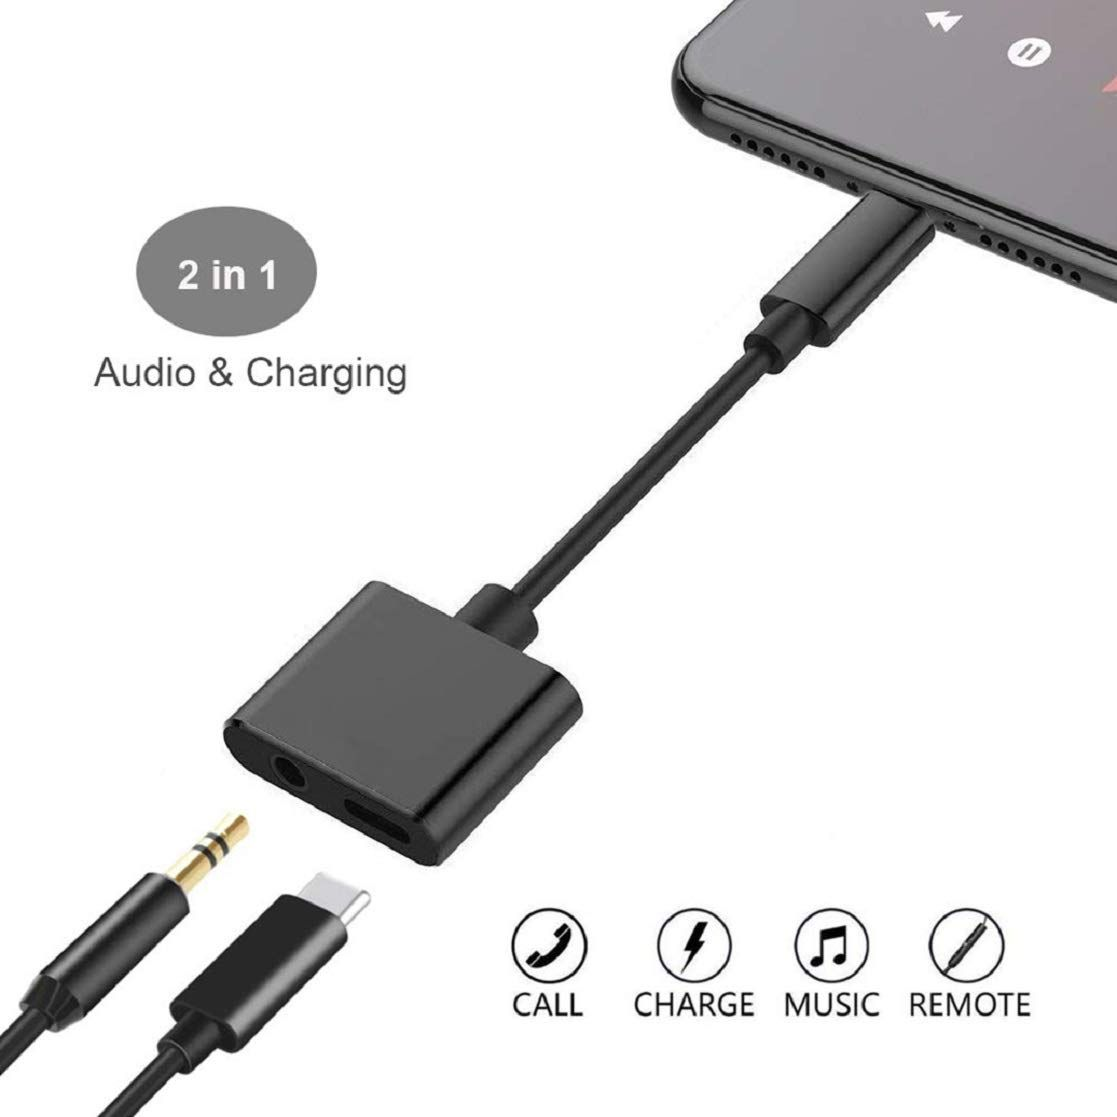 for iPhone Headphone Jack Adapter for iPhone 8//8 Plus//Xs//Xs Max//XR// 7//7 Plus Earphone Splitter for iPhone Adaptor Dongle 2 in 1 Chargers /& Aux Audio Connector Charger Cable Support All iOS System LUCO